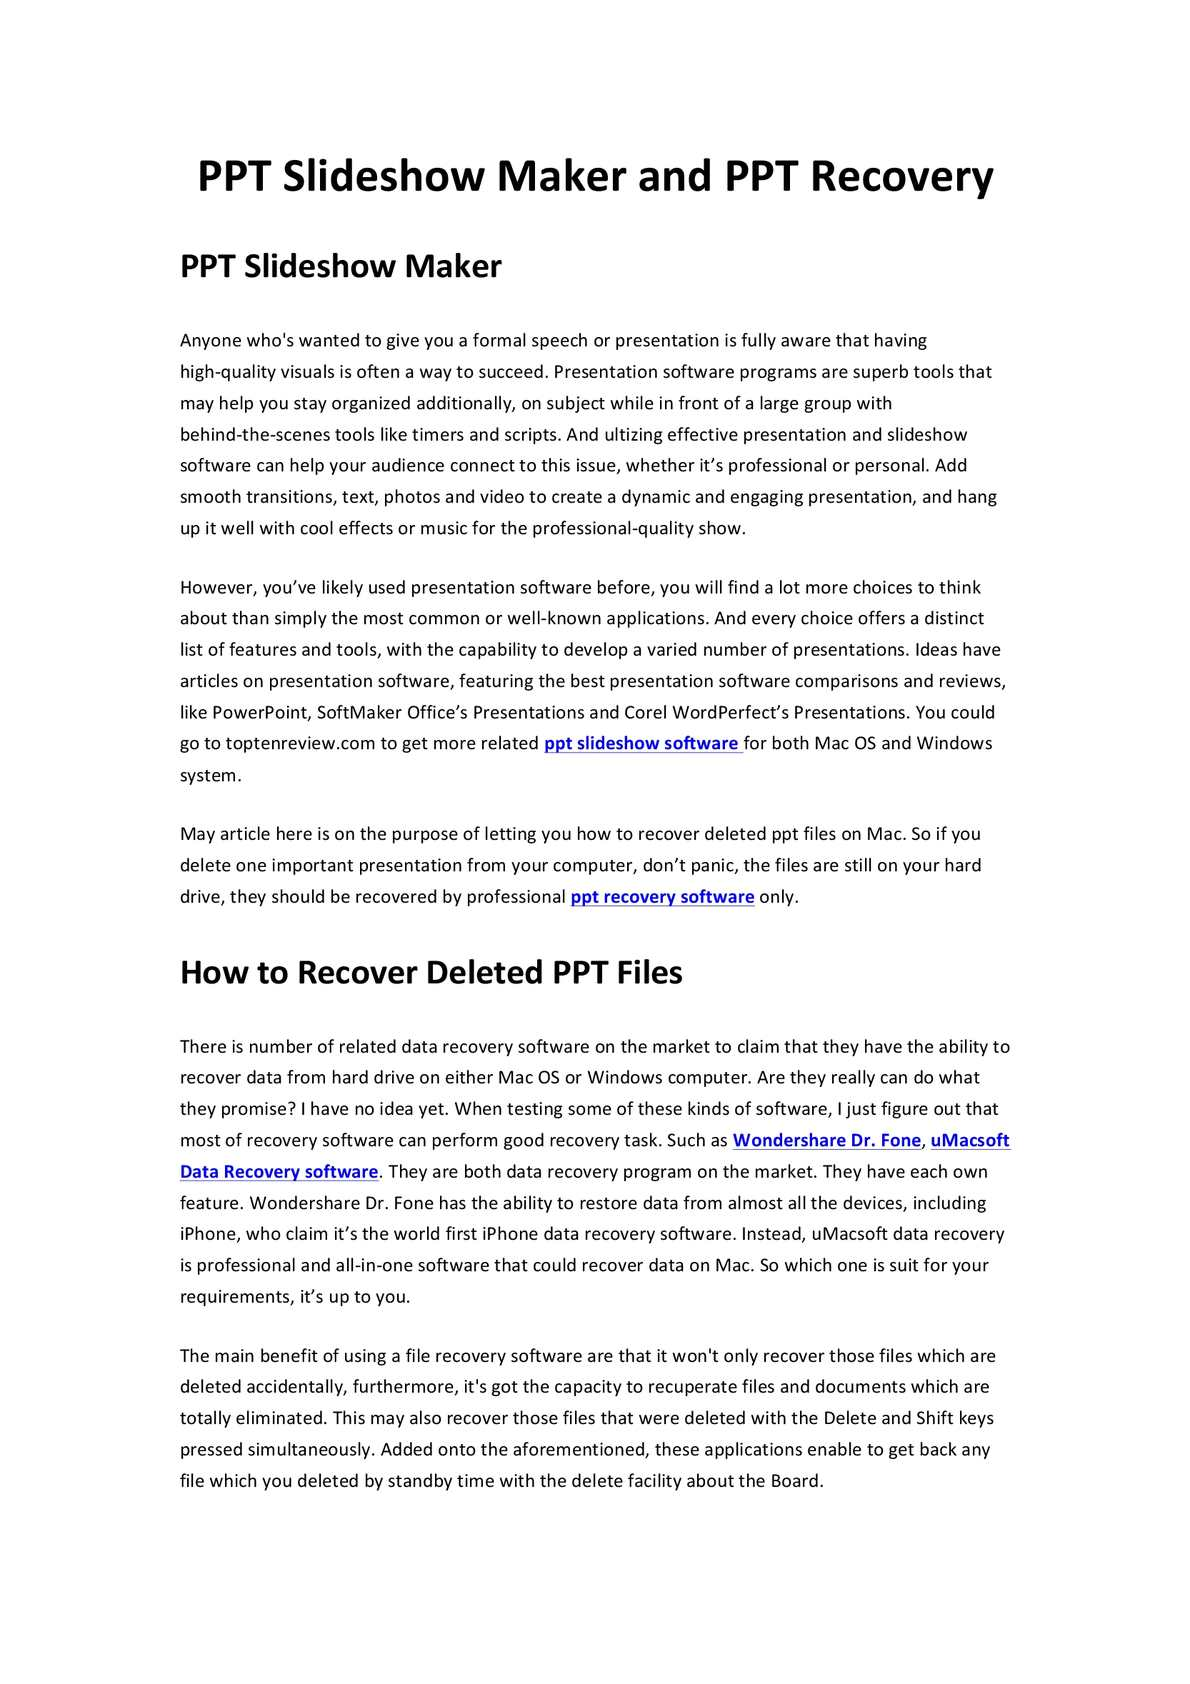 calaméo rapid advice in ppt slideshow maker and ppt recovery the